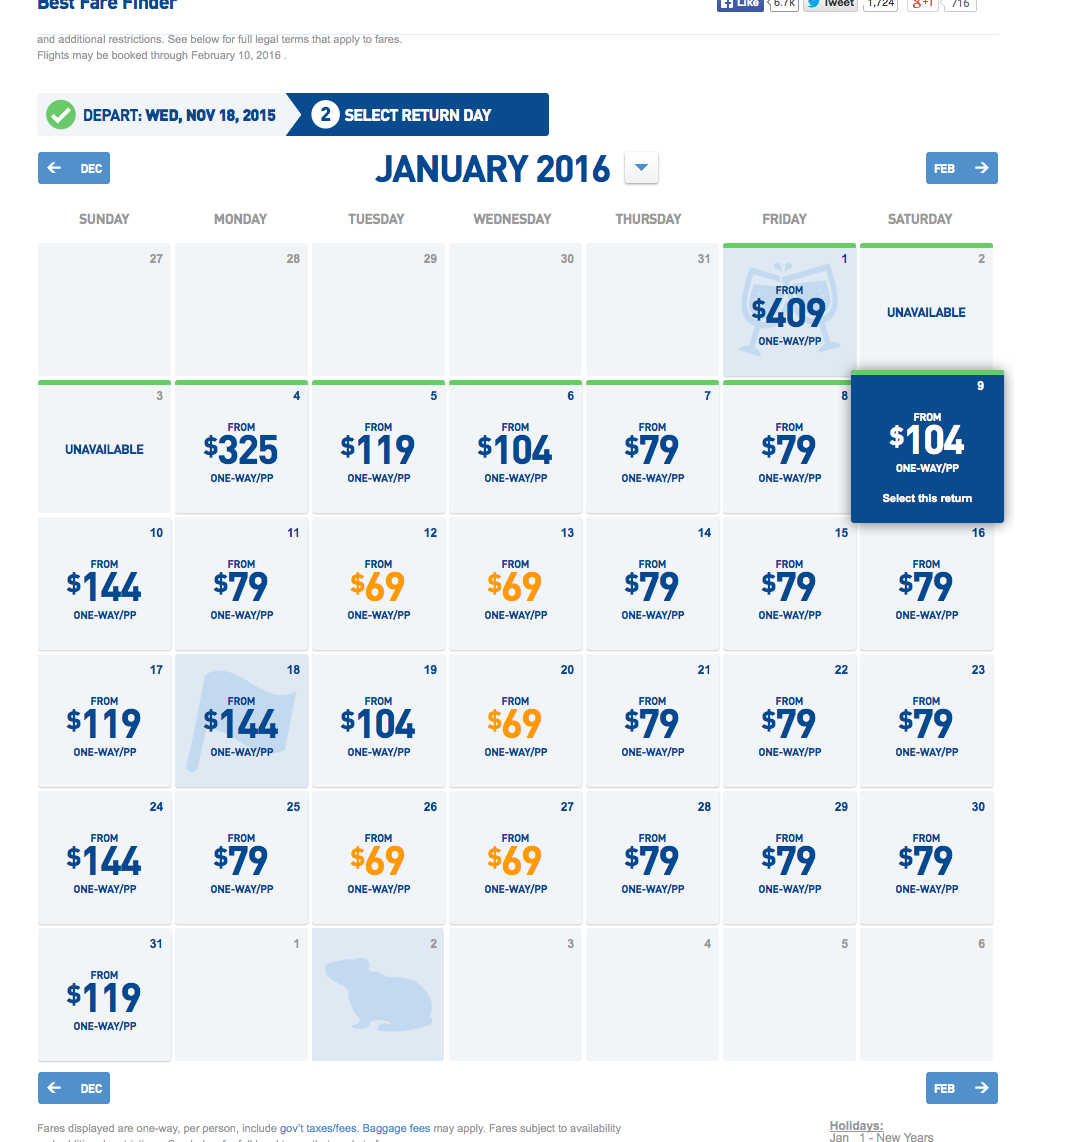 RT @airfarewatchdog: Baltimore-Ft. Lauderdale $69 each way JetBlue fall/winter nonstop